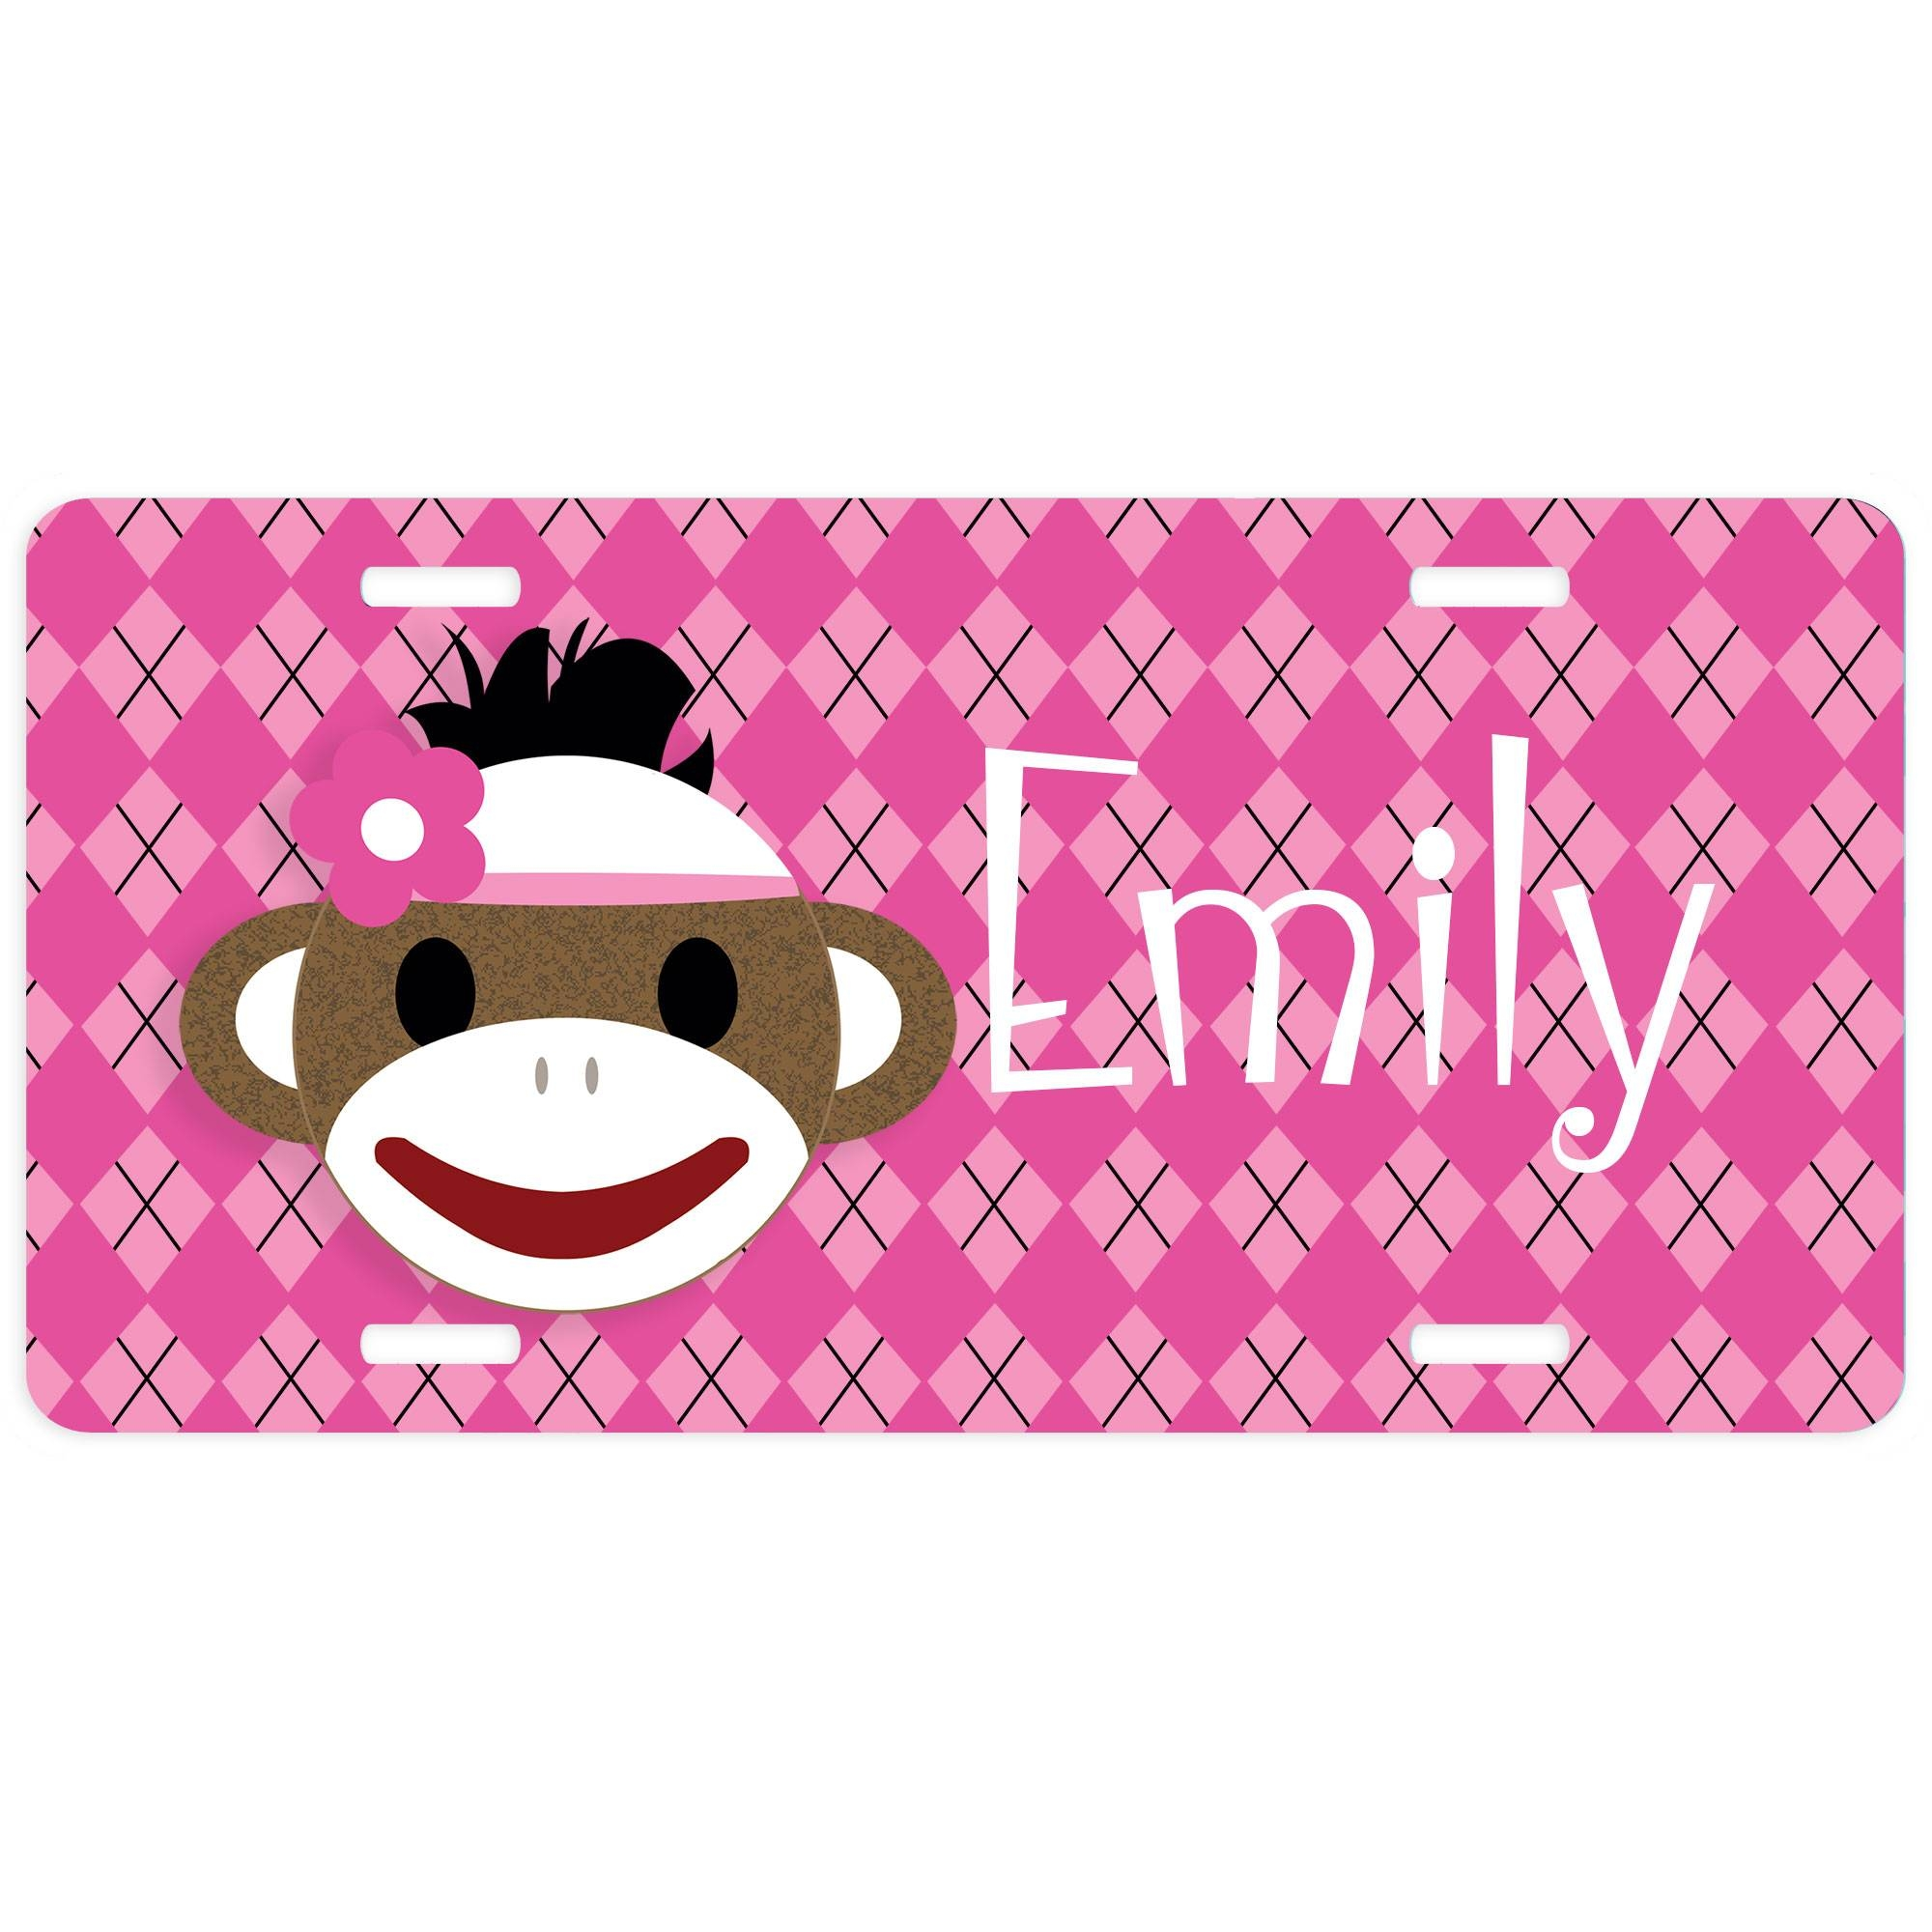 Sock Monkey Car Tag, Personalized Decorative Sock Monkey License Pertaining To Recent Sock Monkey Wall Art (View 9 of 30)